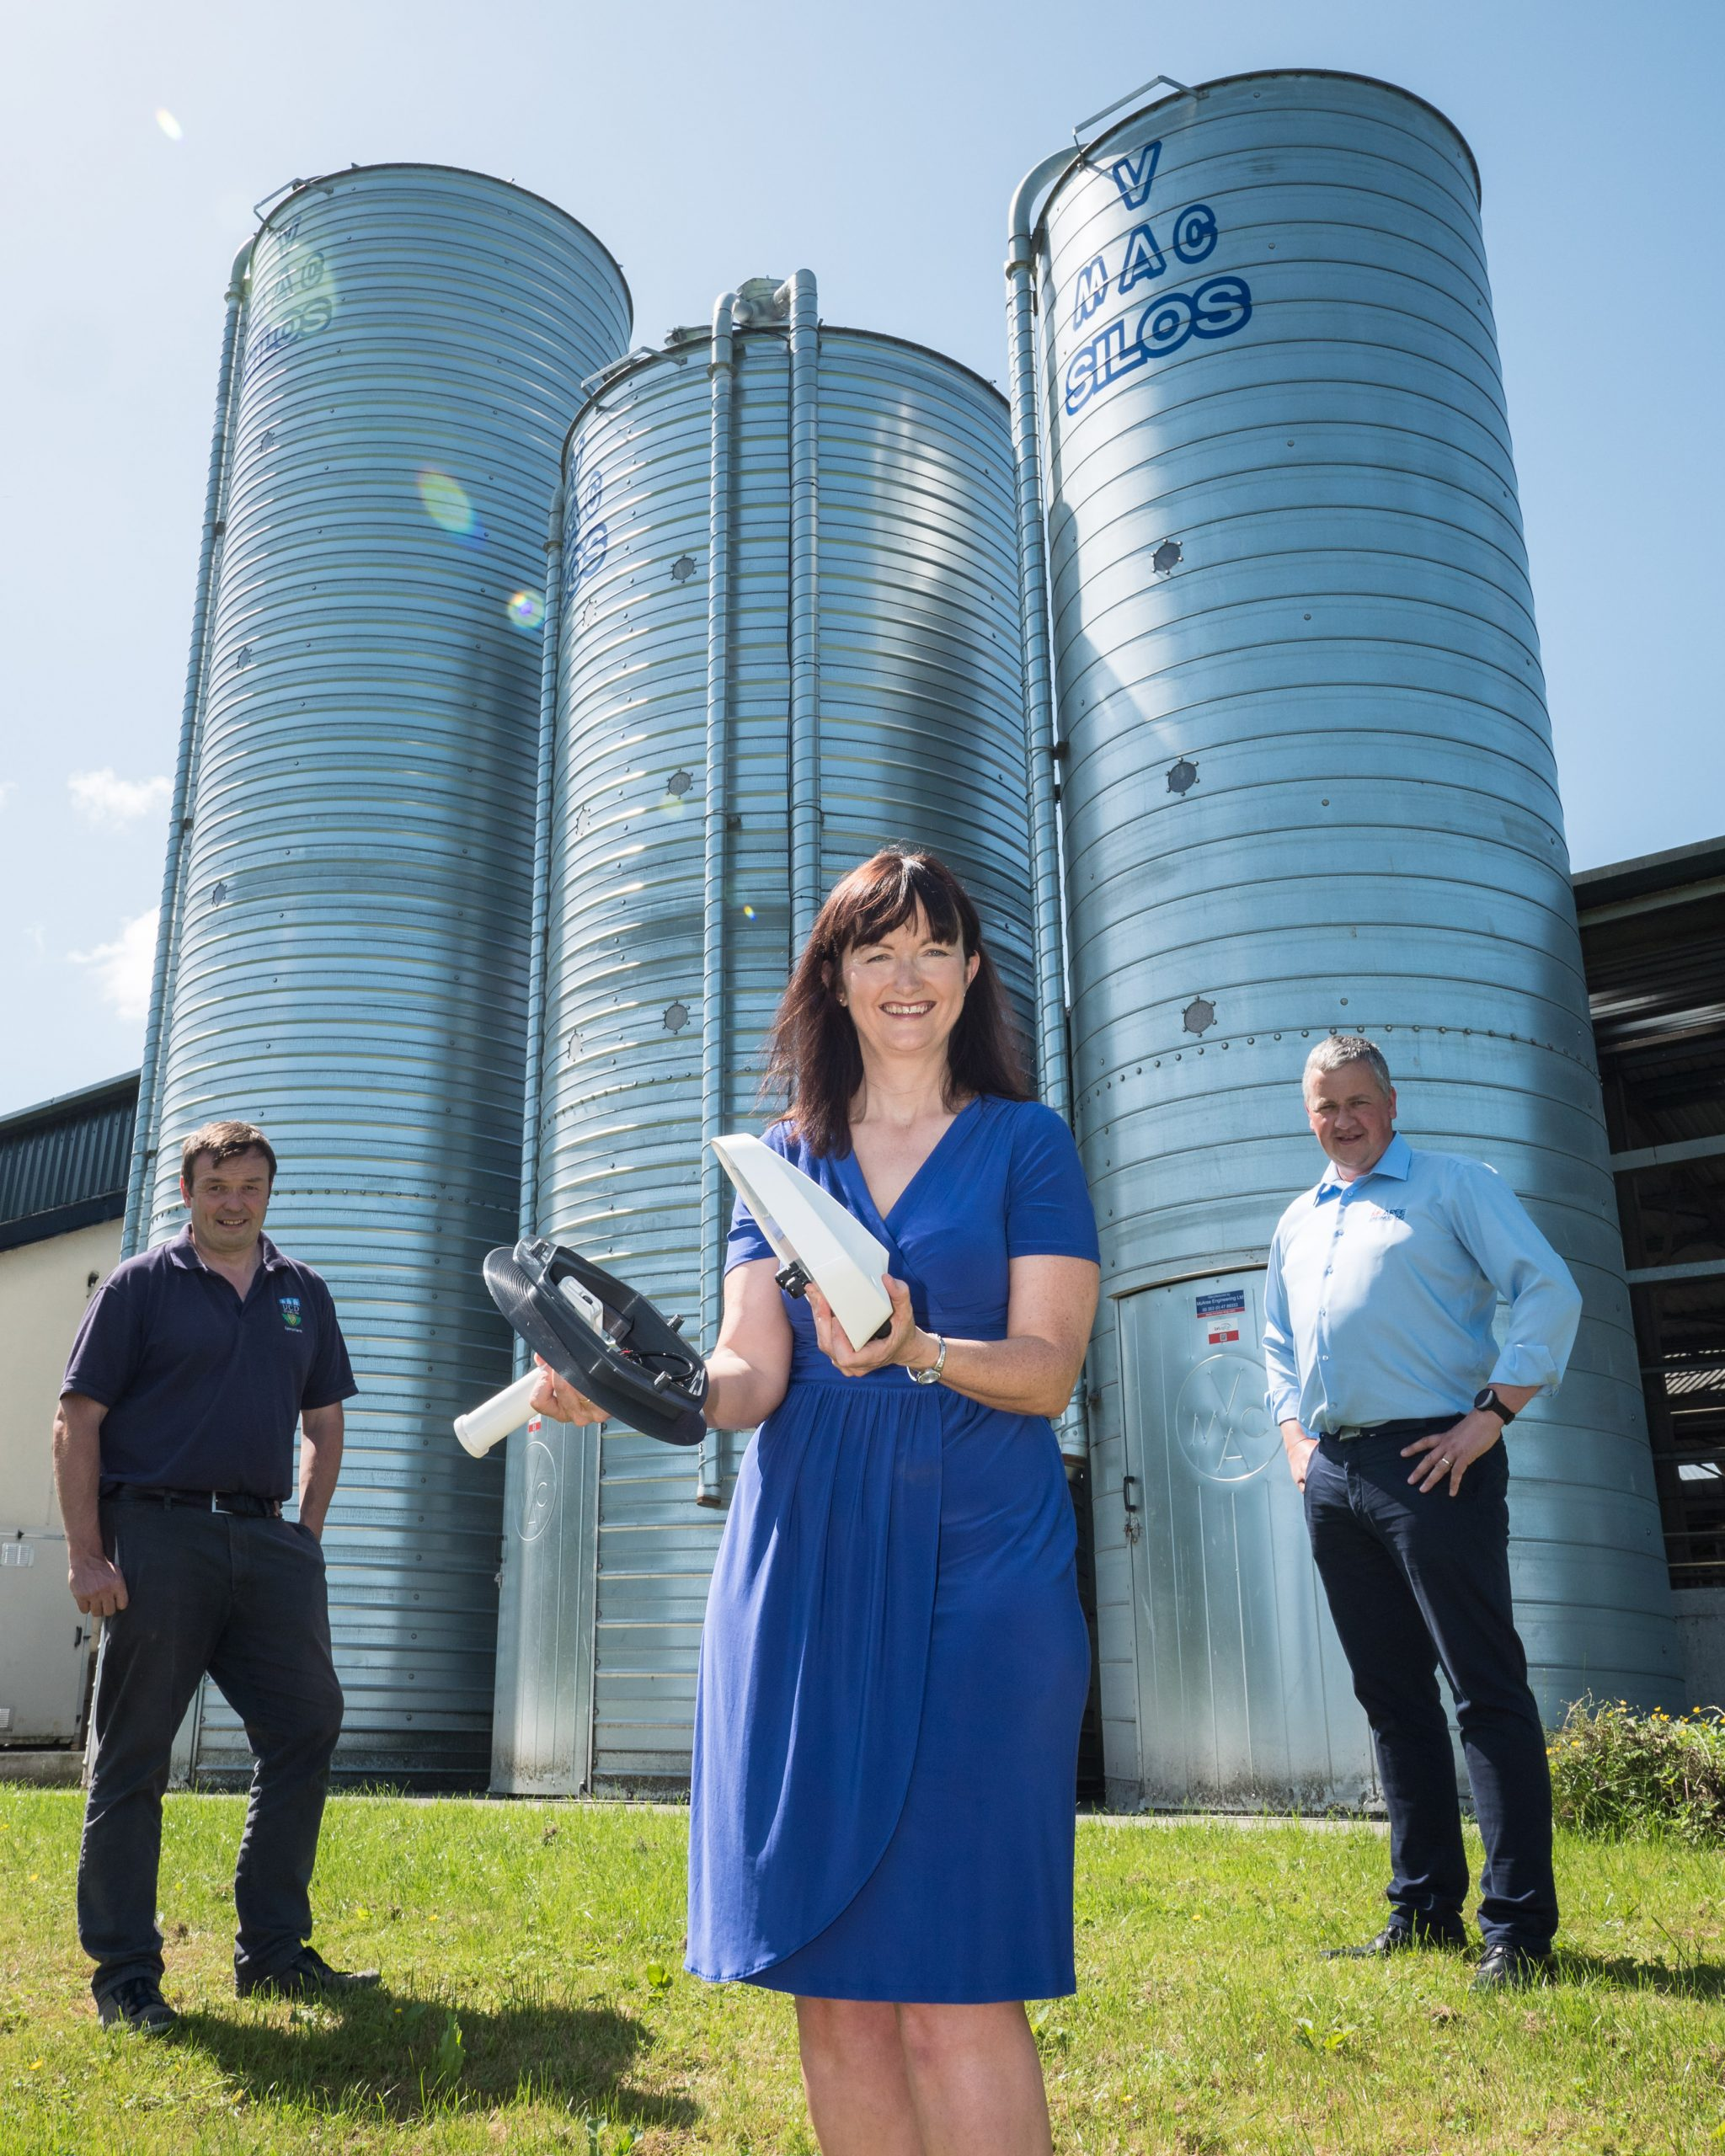 McAree Engineering to Launch SiloSpi Smart Feed Silo Technology at Balmoral Show